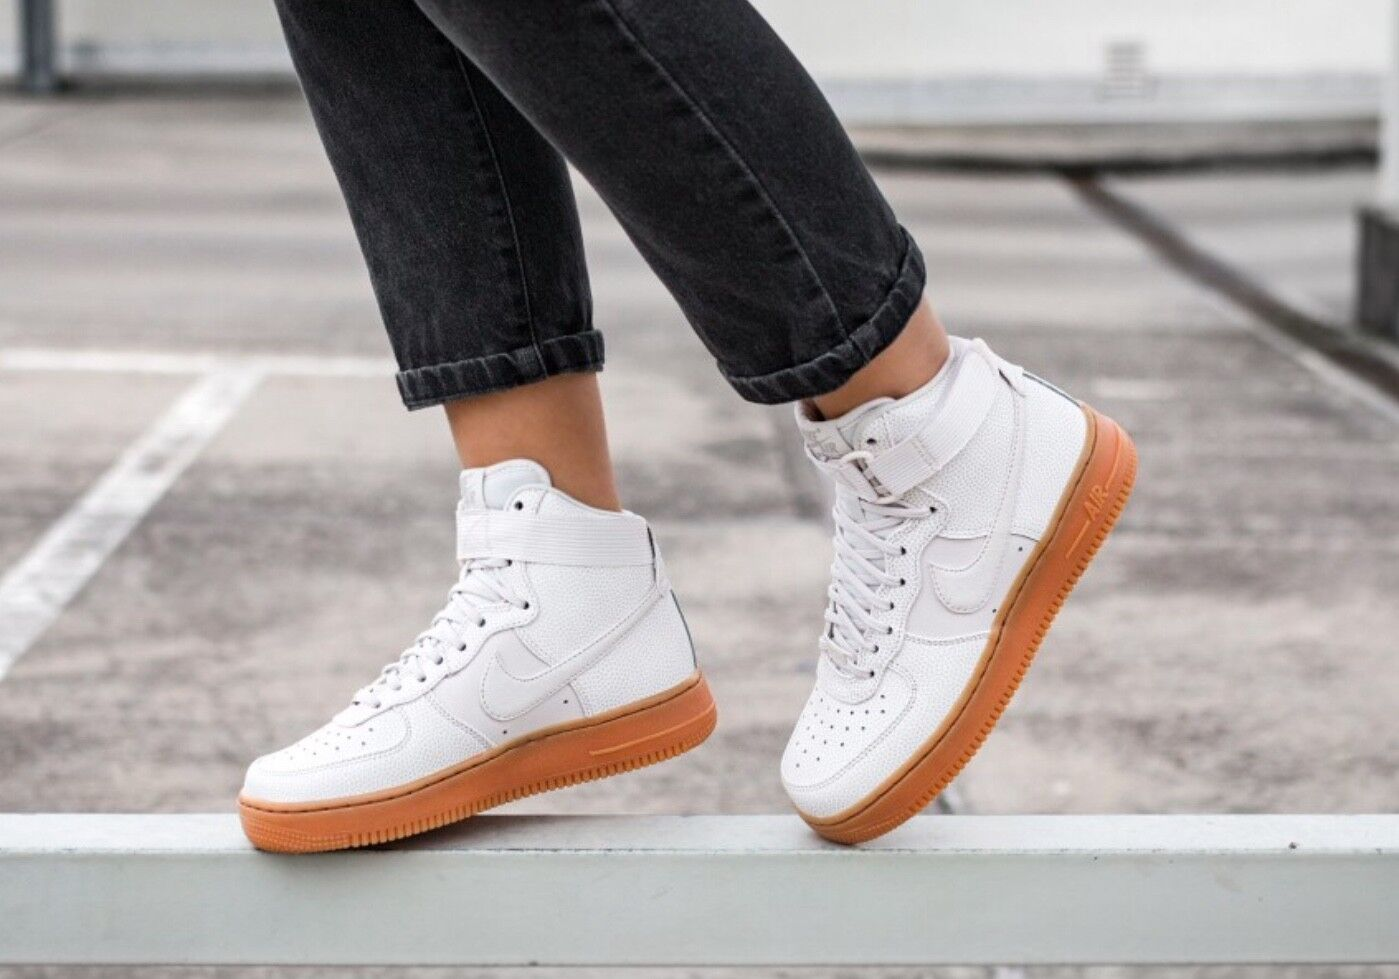 femmes Nike Air Force 1 High SE Boot l 860544-001 UK3/EU36/US5.5 BNIB no l Boot lid 57ecb3